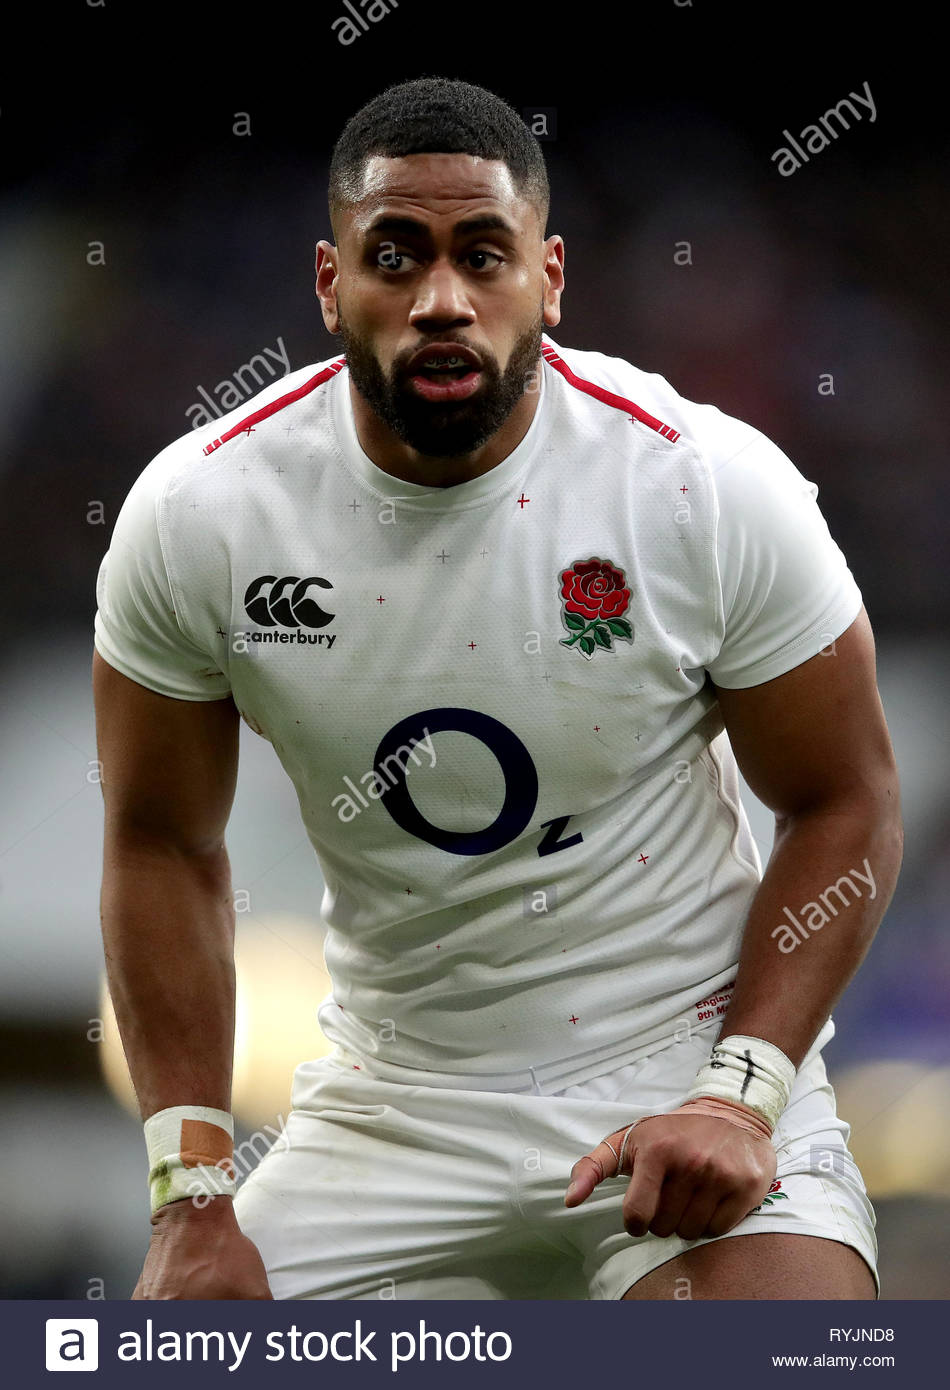 File photo dated 09-03-2019 of England's Joe Cokanasiga. England have dropped Joe Cokanasiga from their matchday 23 for Saturday's Guinness Six Nations match against Scotland at Twickenham, with Jack Nowell starting on the right wing, the Rugby Football Union has announced. - Stock Image